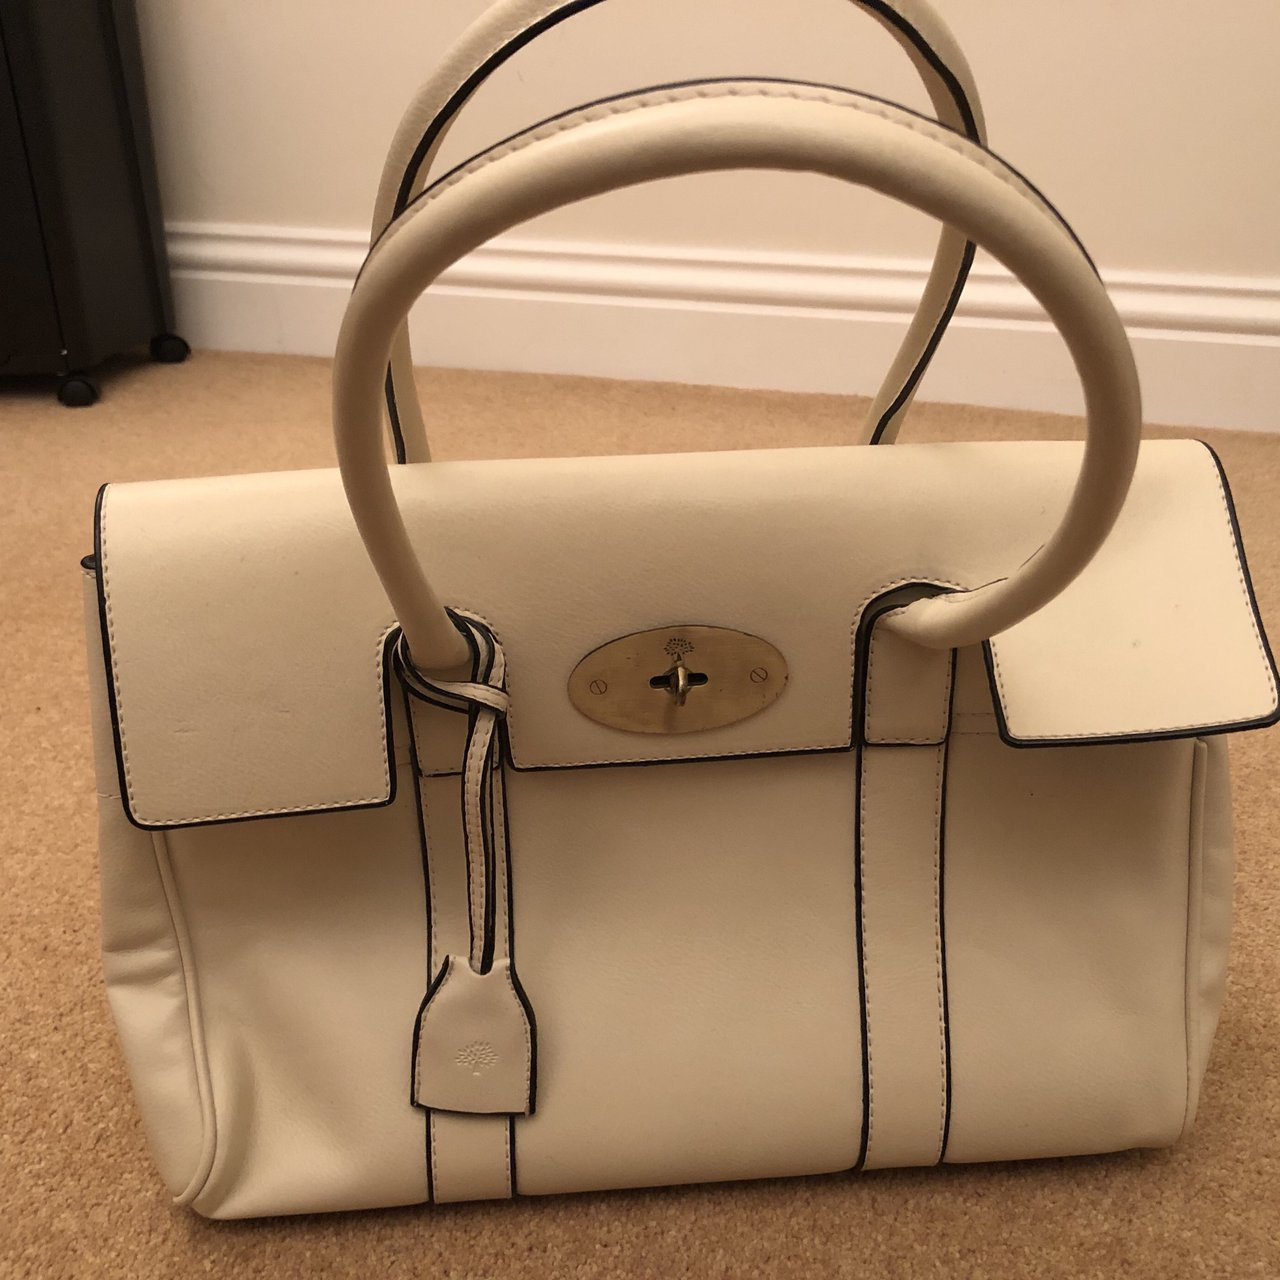 ef8e21bbd728 Mulberry bayswater white cream bag with clasp. Mulberry tree - Depop